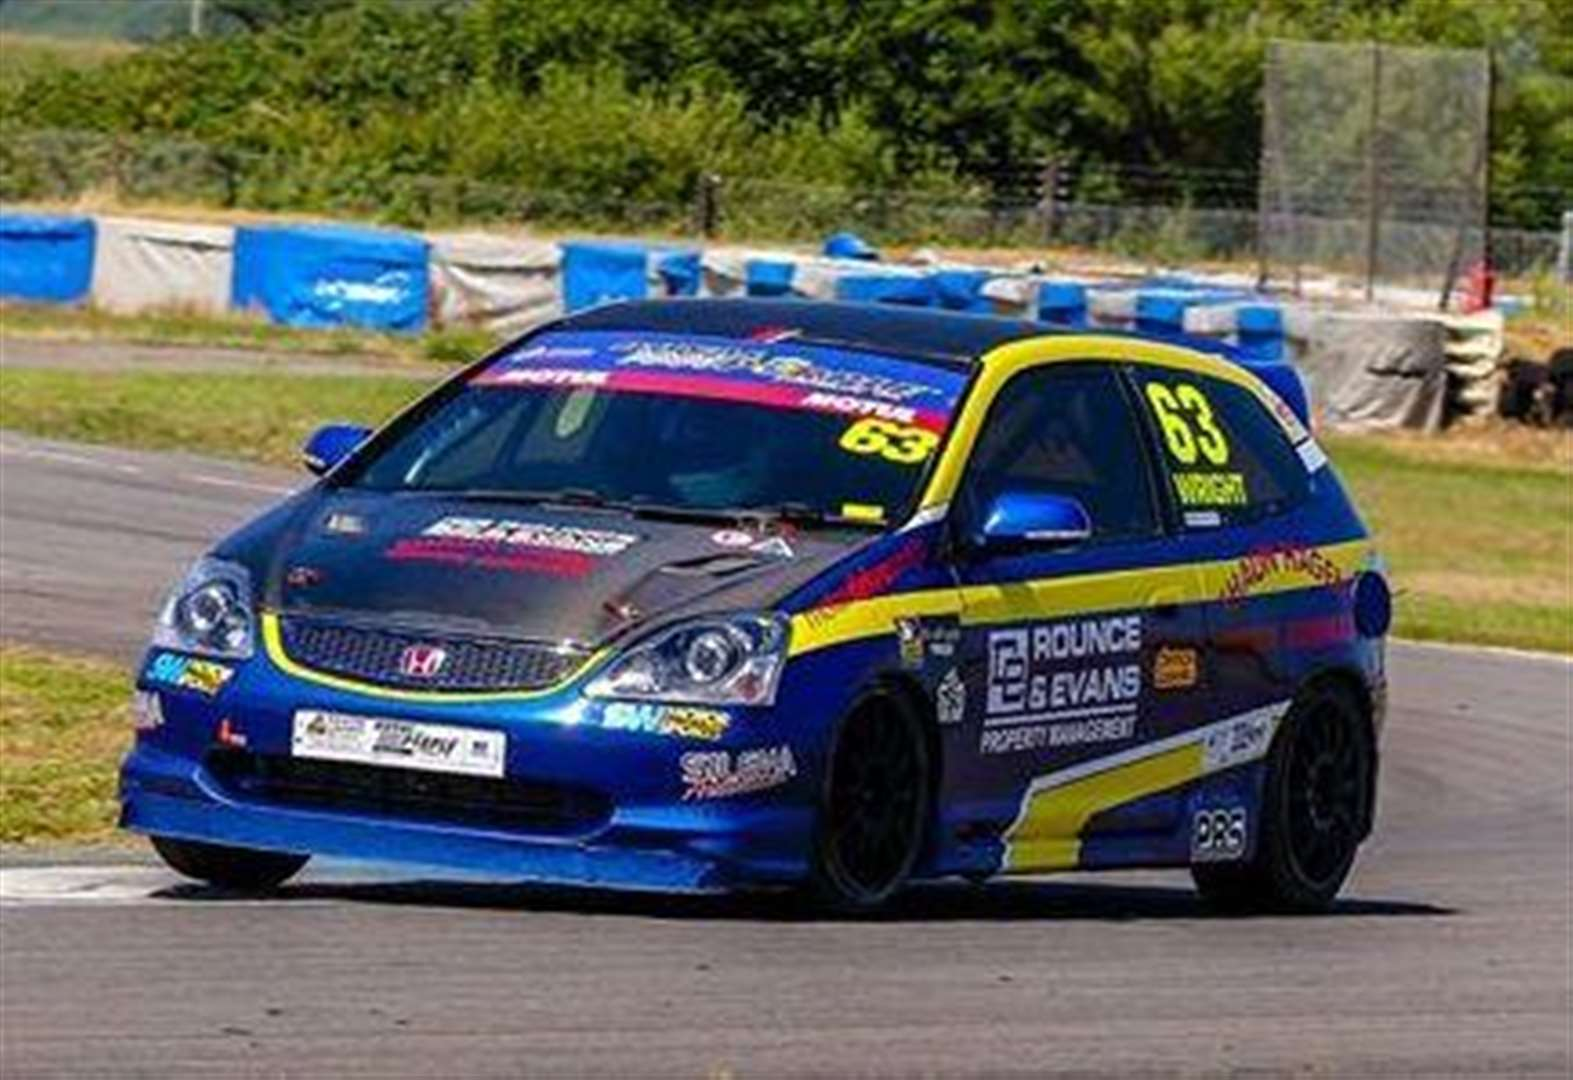 Pembrey highs and lows for Snettisham driver